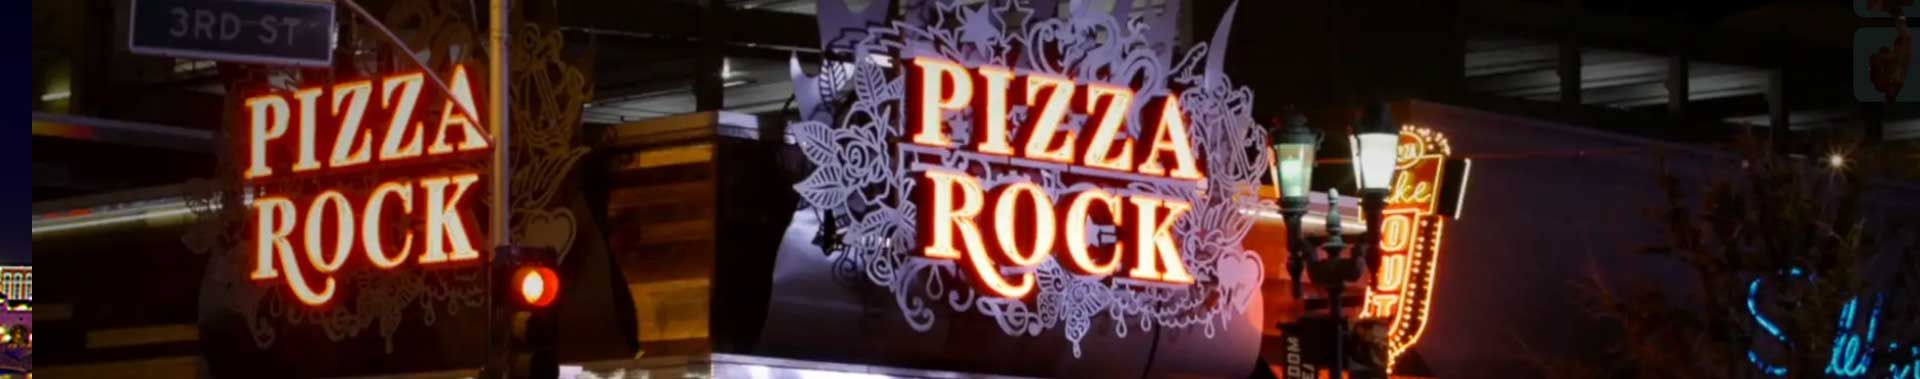 Pizza Rock Las Vegas Banner